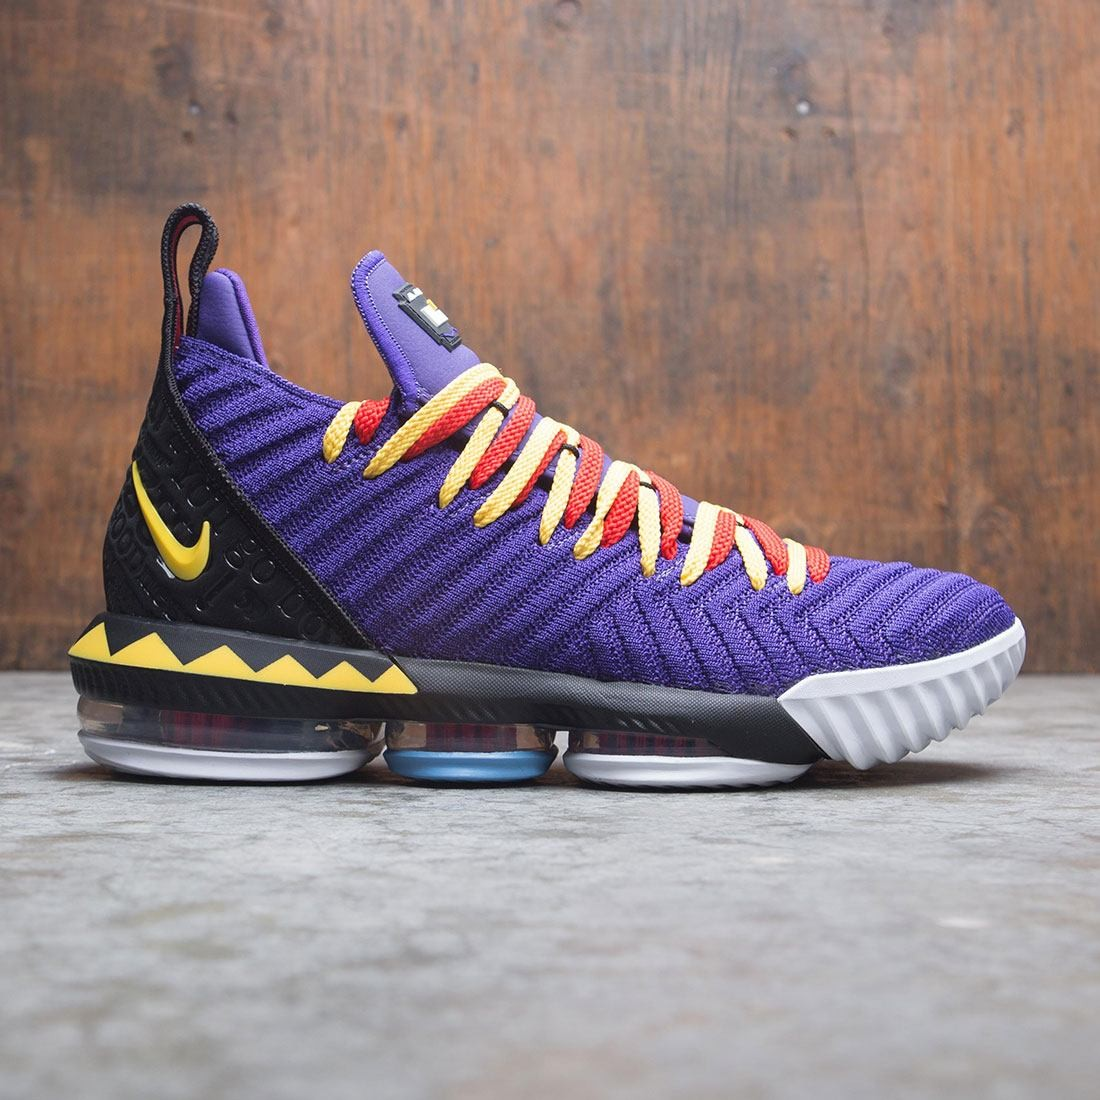 new concept cc560 3f07a Nike Men Lebron Xvi Martin court purple tour yellow comet red